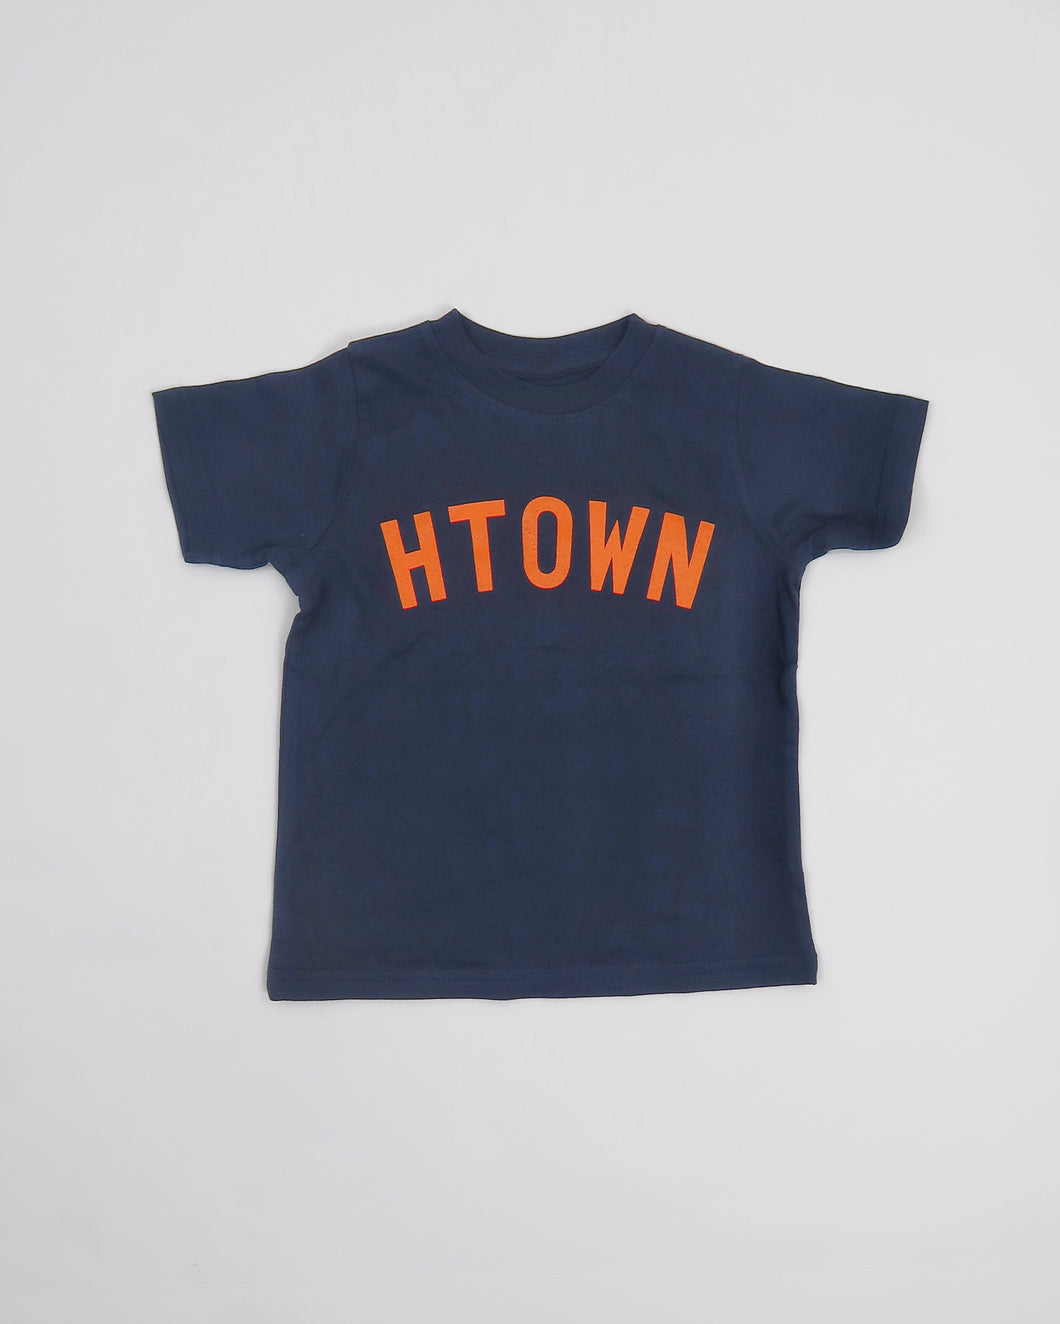 The HTOWN Toddler Tee (Navy/Orange)